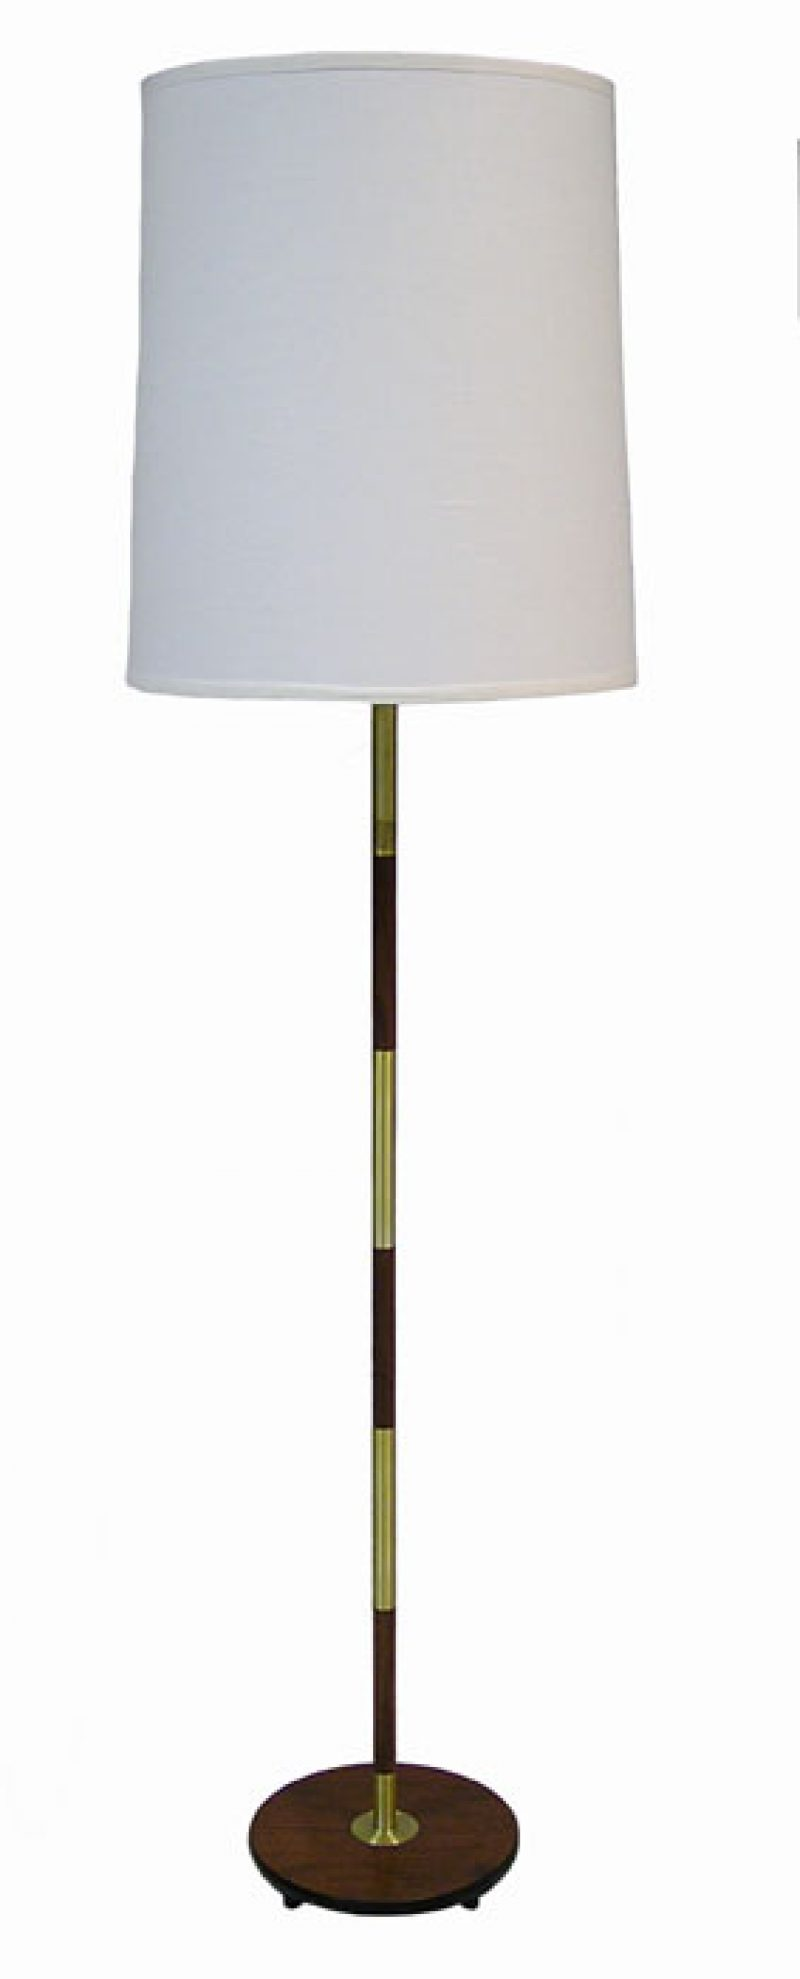 1960s Teak & Brass Floor Lamp *Denmark*